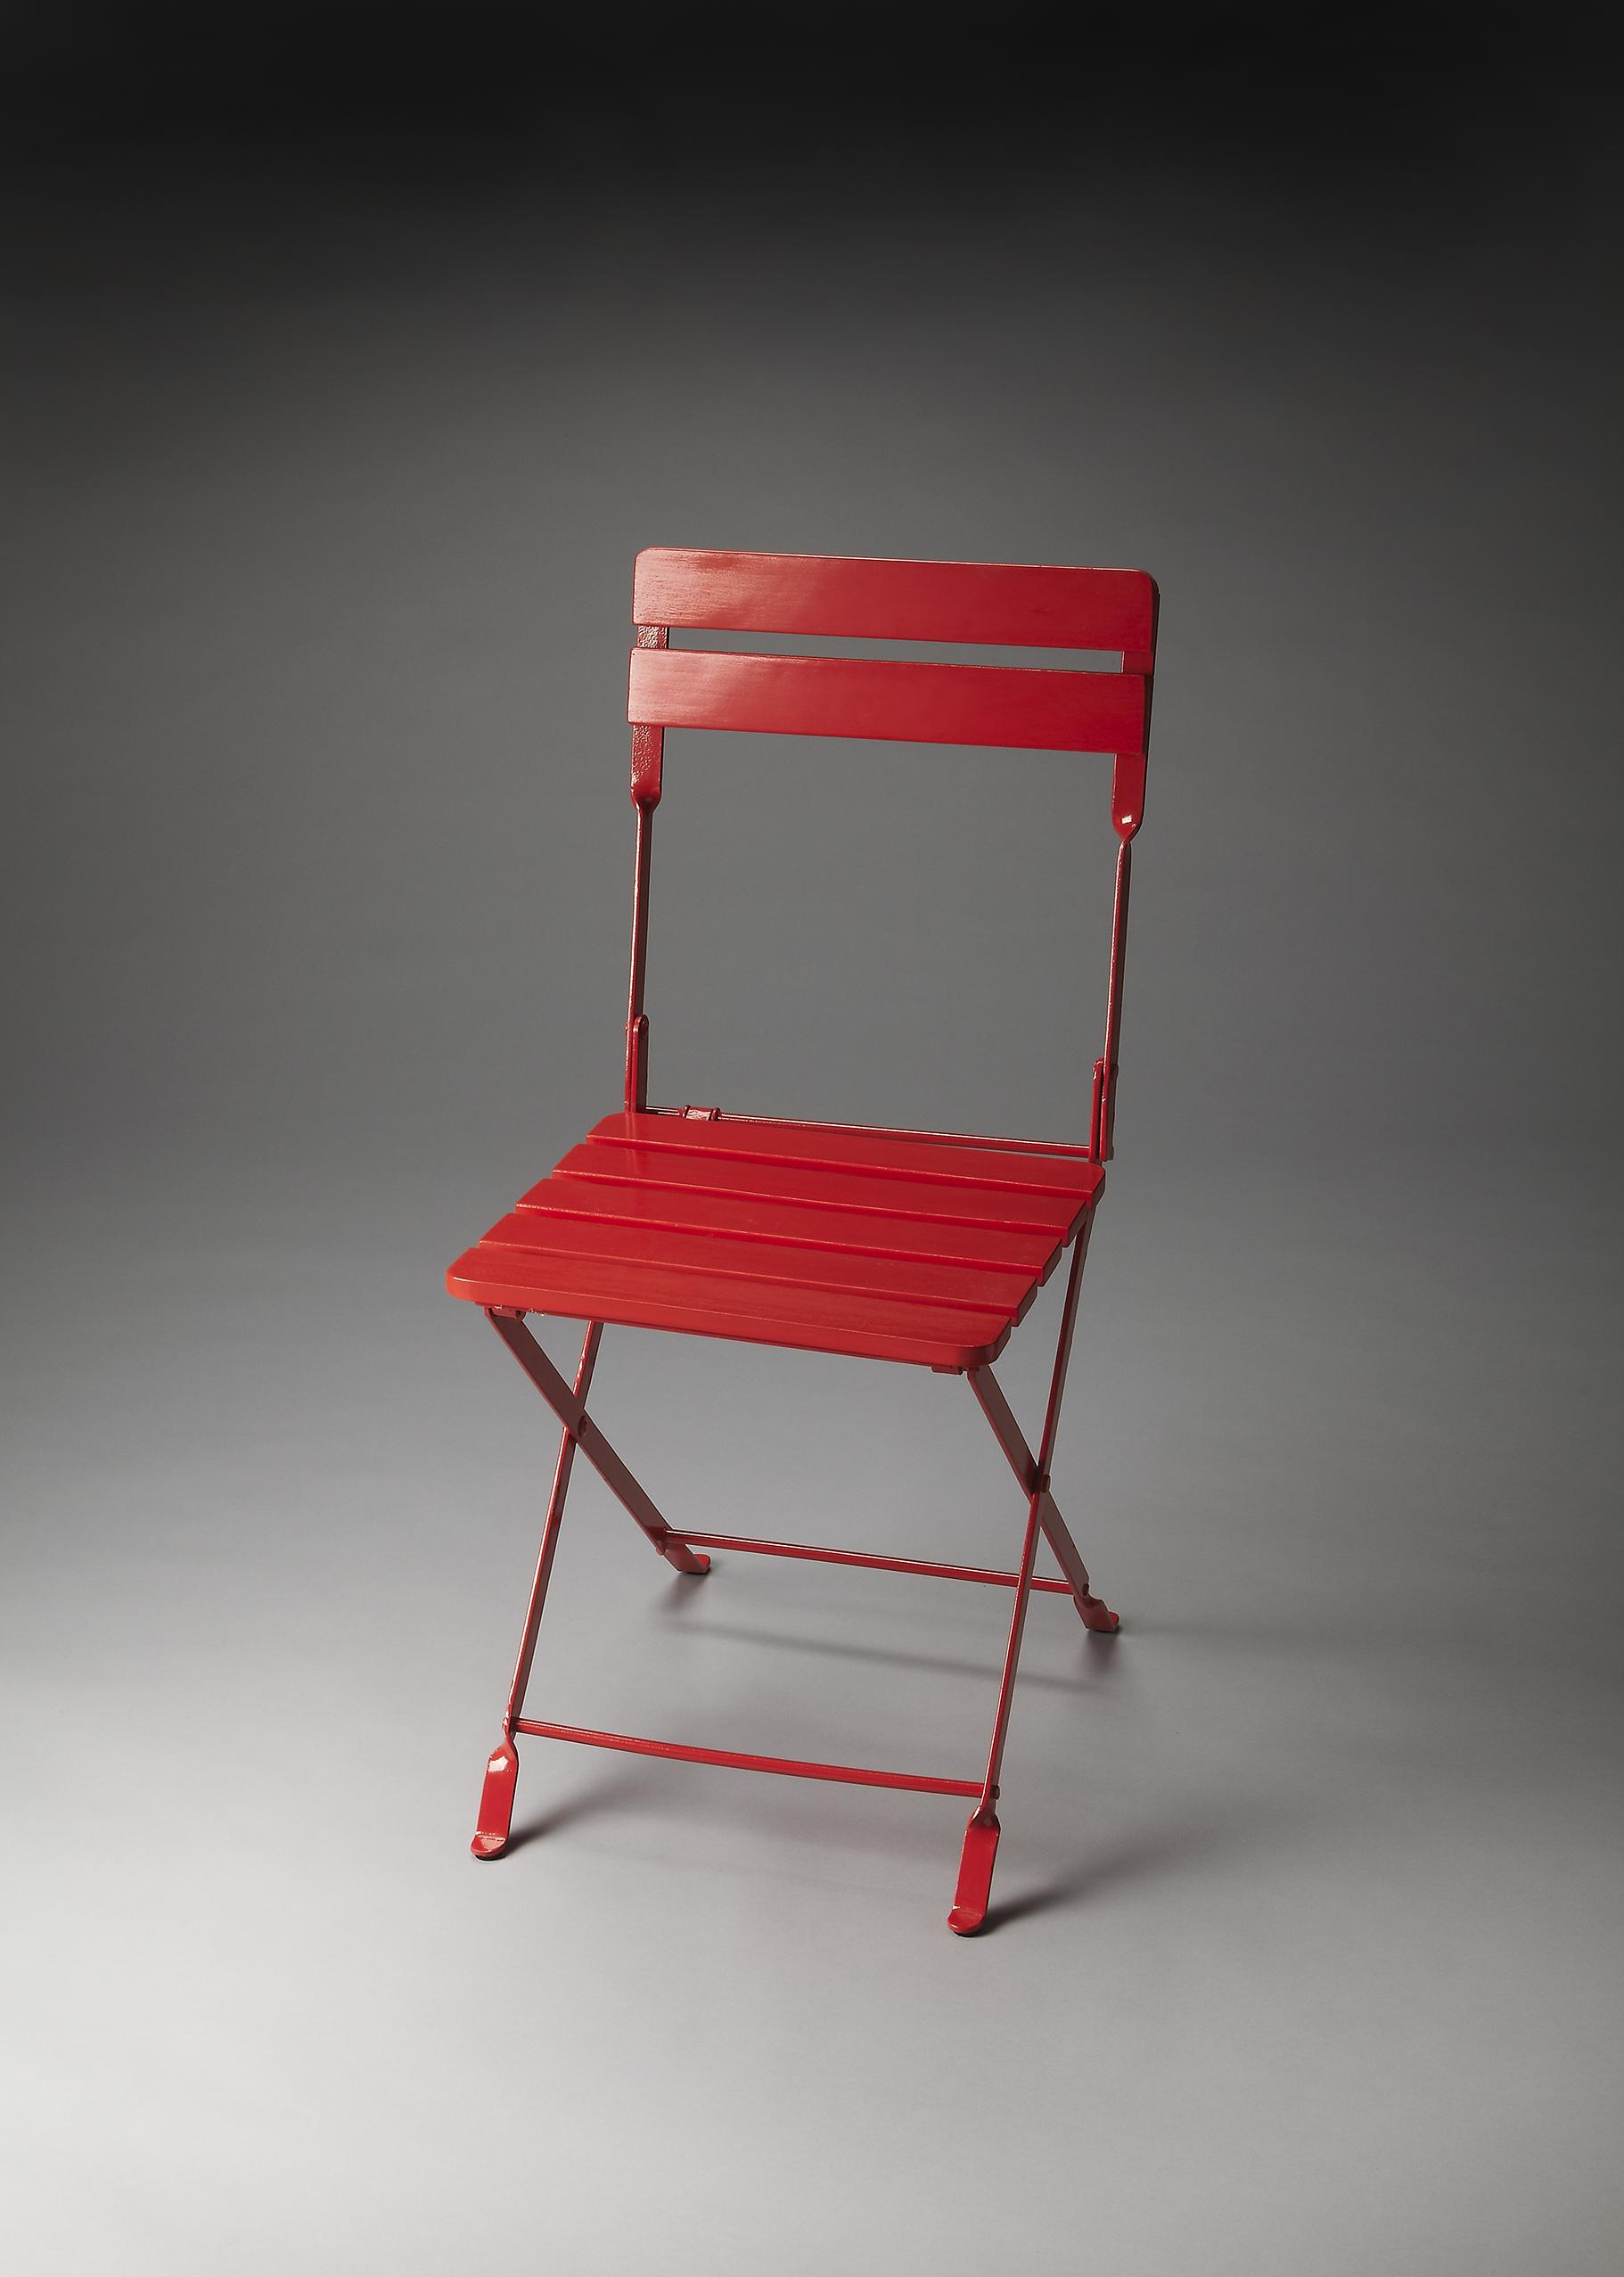 Butler Specialty Company Industrial Chic Folding Chair - Item Number: 4236293